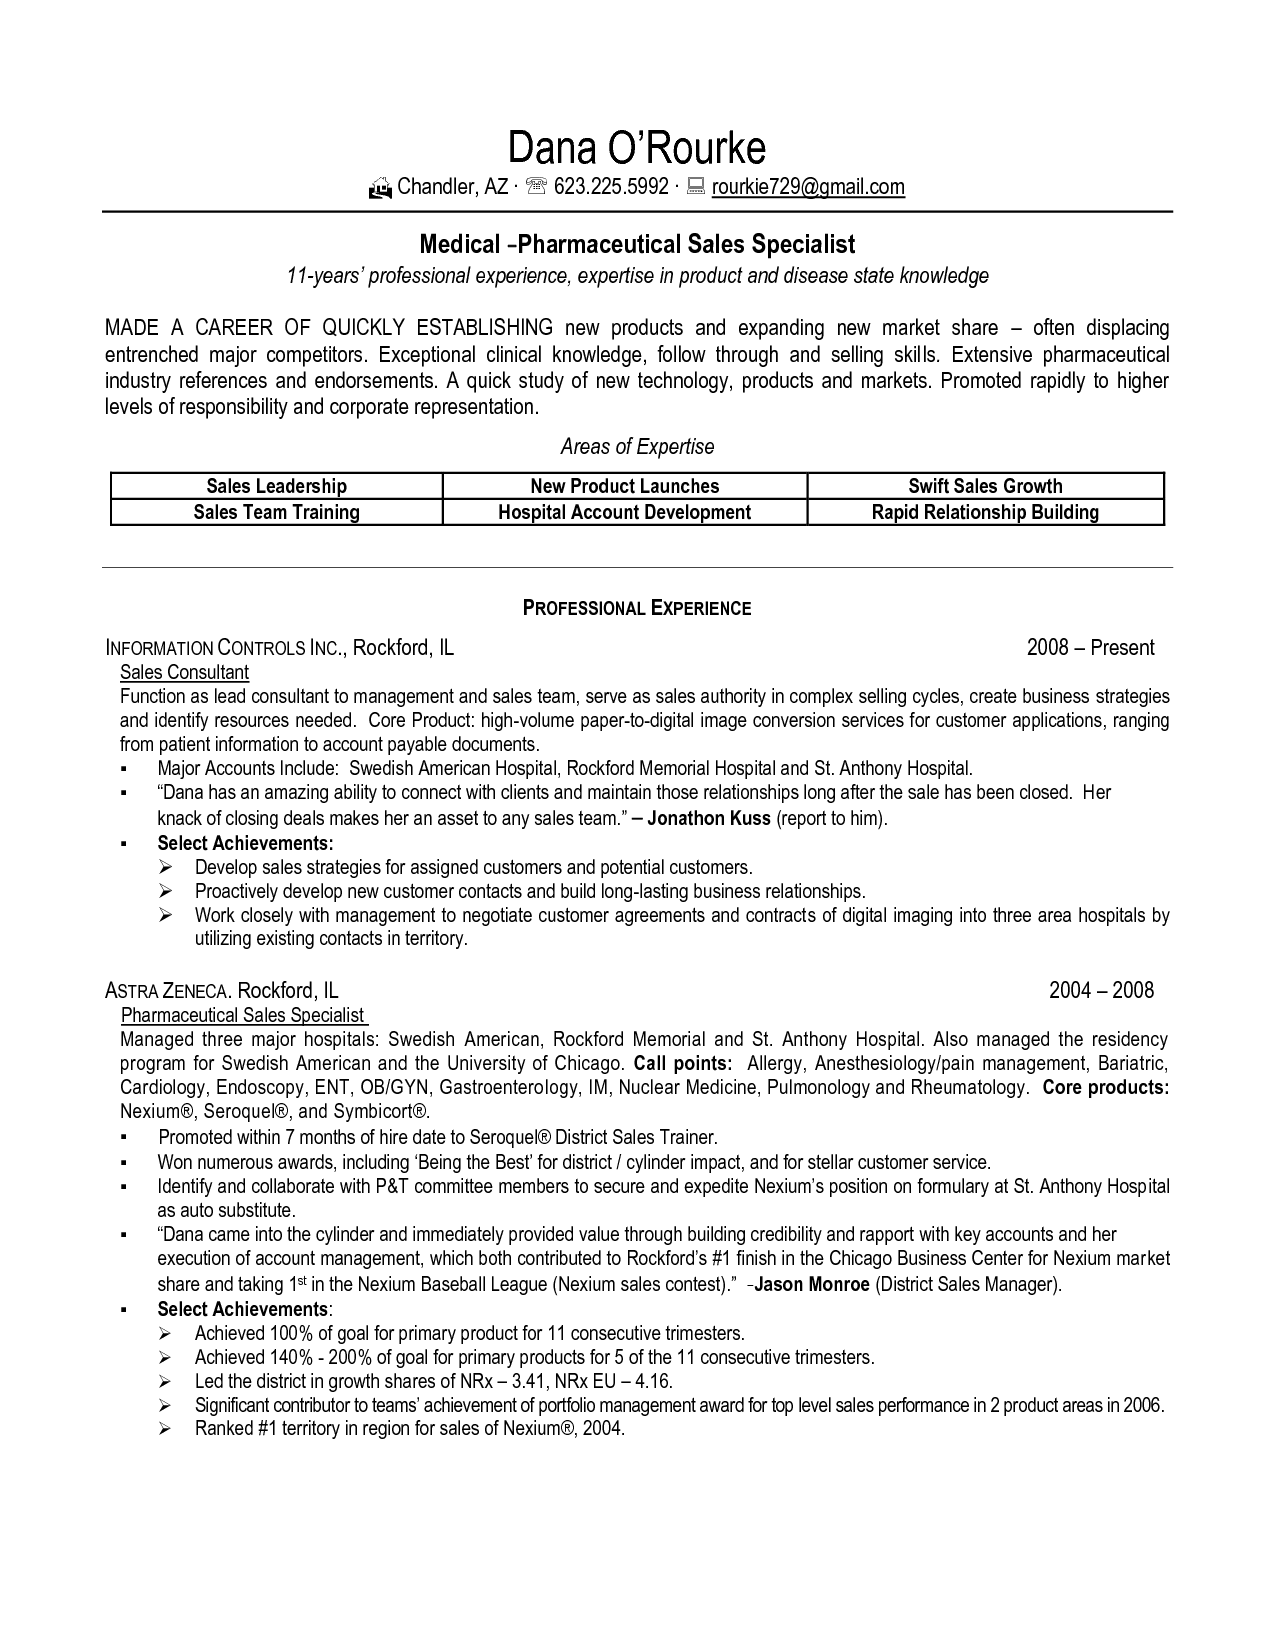 Sample Resume For Pharmaceutical Industry Sample Resume For Pharmaceutical  Industry Sample Resume For Pharmaceutical Sales Sample  Sales Job Resume